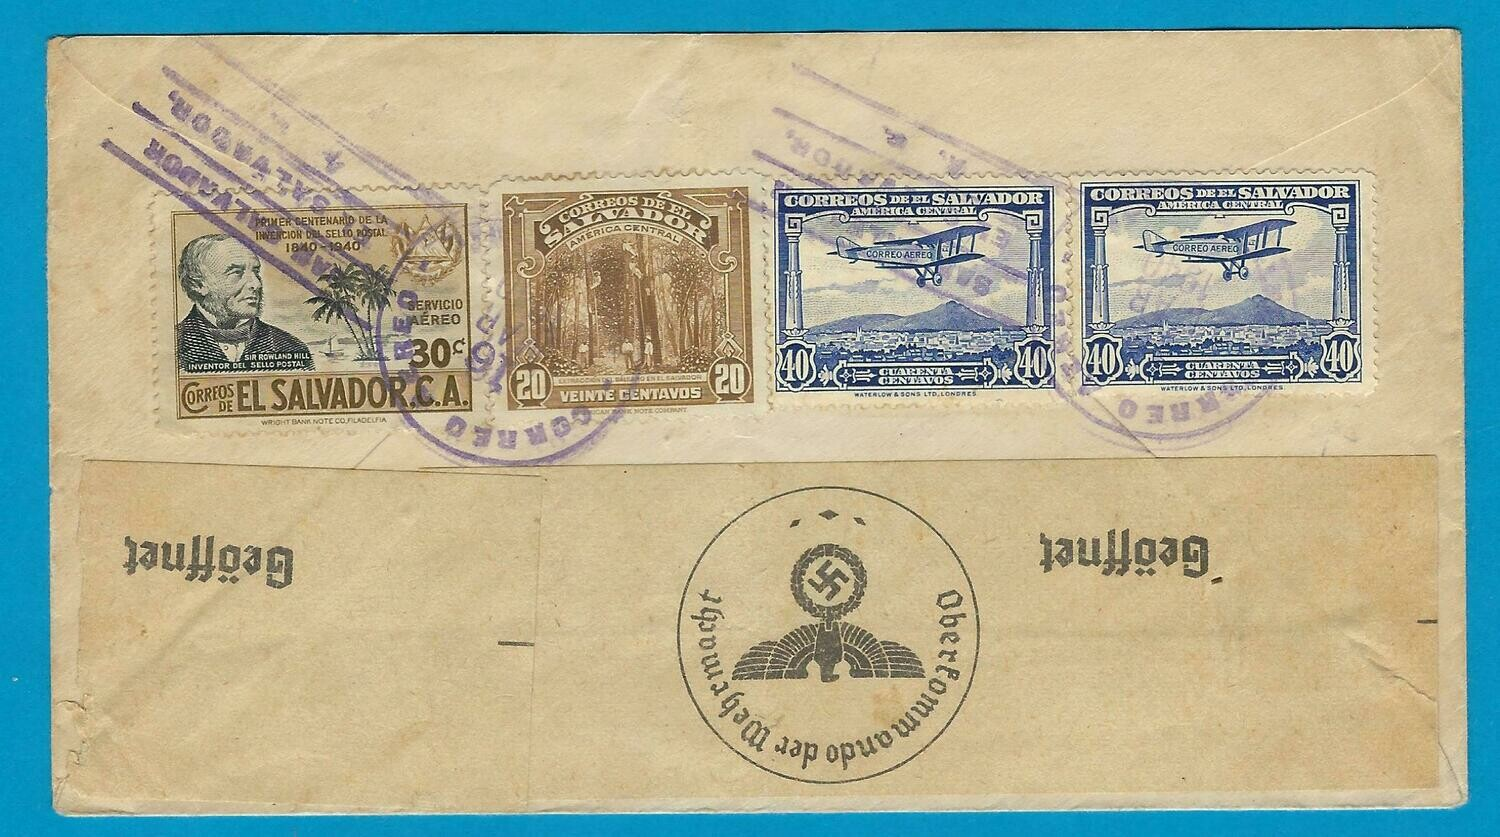 EL SALVADOR censor air cover 1940 San Salvador to Germany